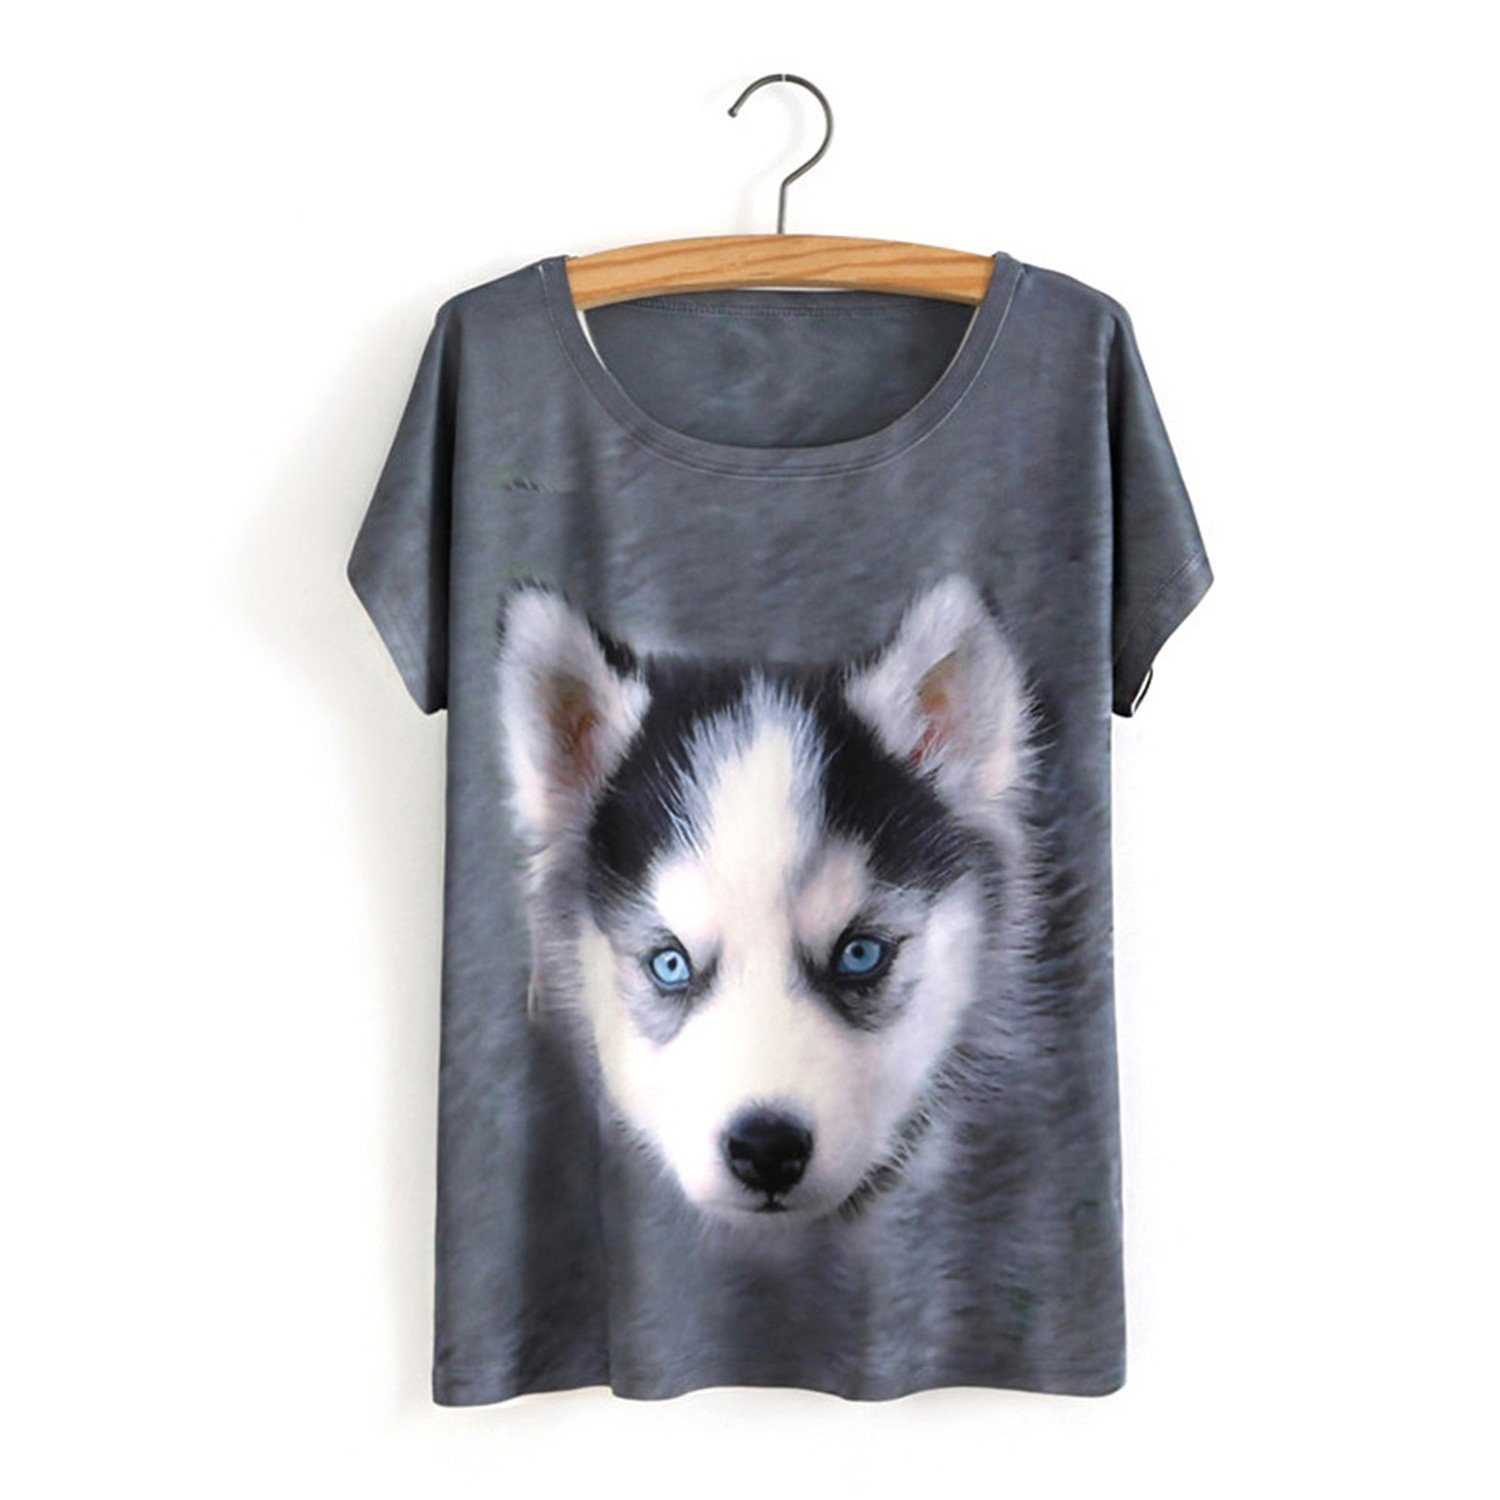 Amazon.com: Acereima New Women Cartoon T Shirt 3D Animal Dog Print T-Shirt Harajuku Tshirt Homme Camisetas Mujer One Size 1 One Size: Clothing